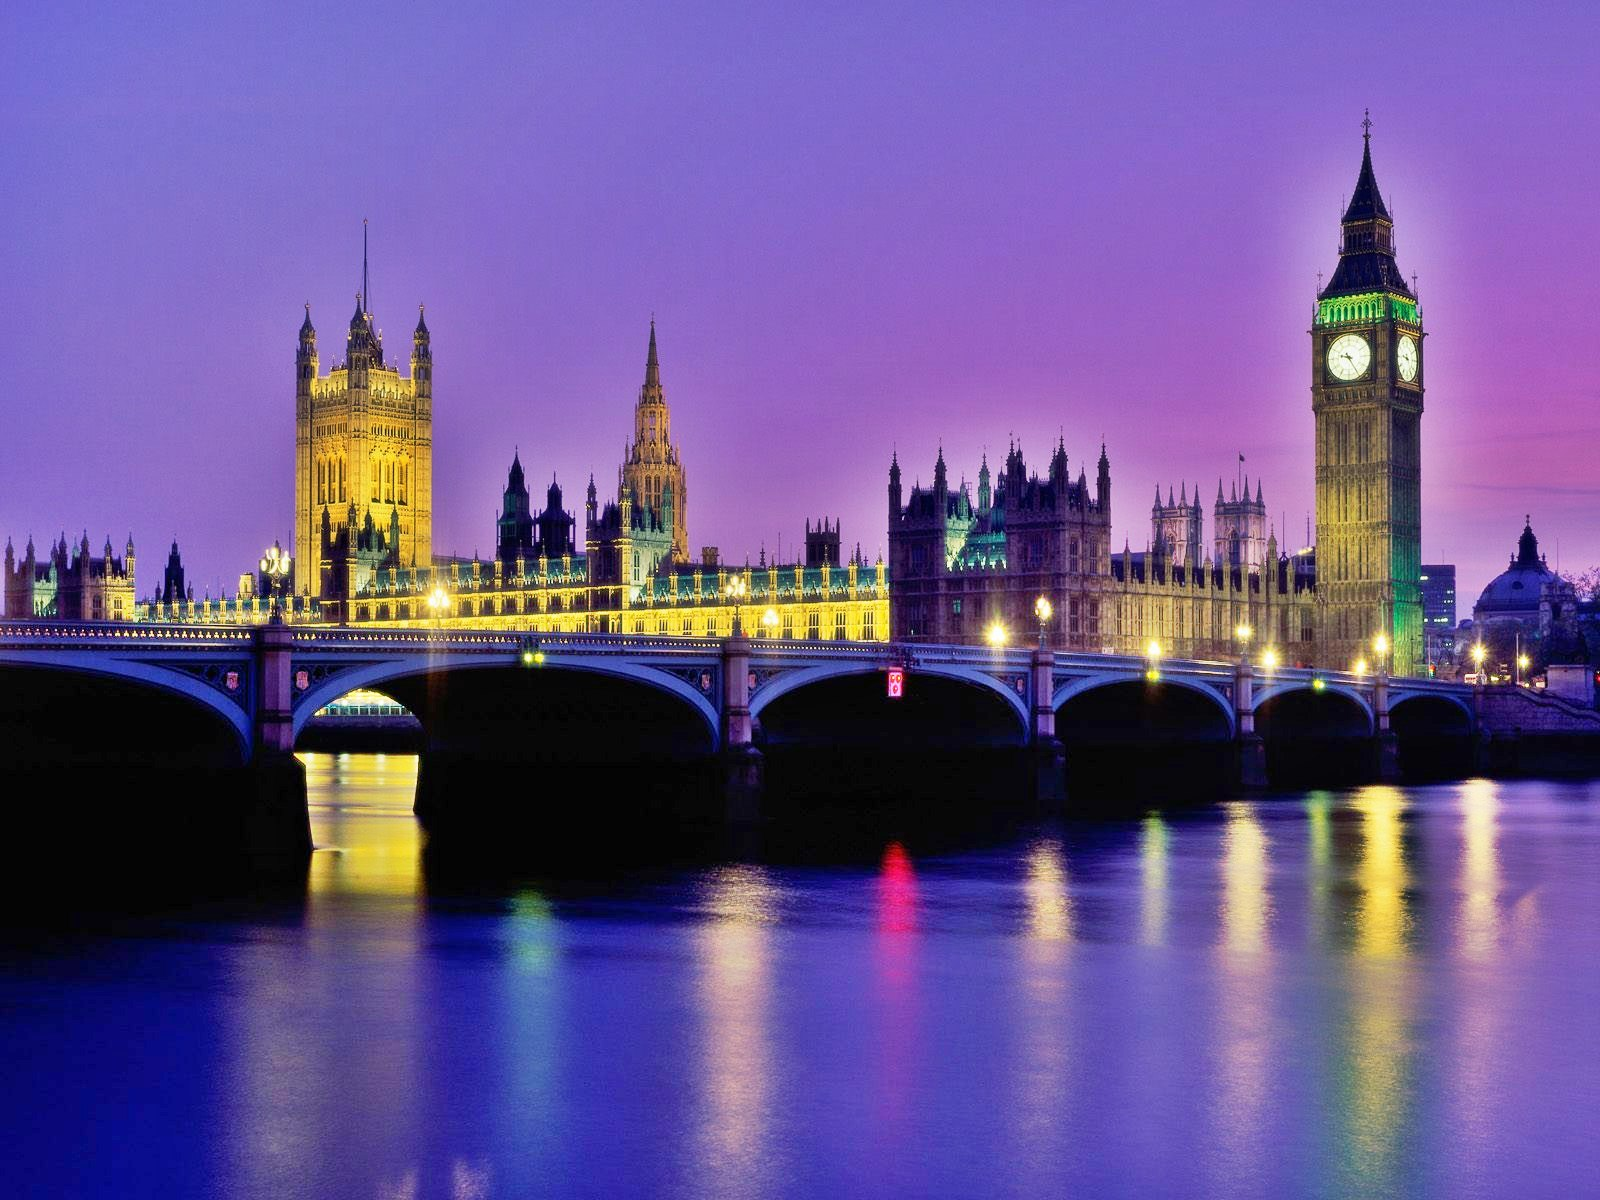 travel images london,england hd wallpaper and background photos